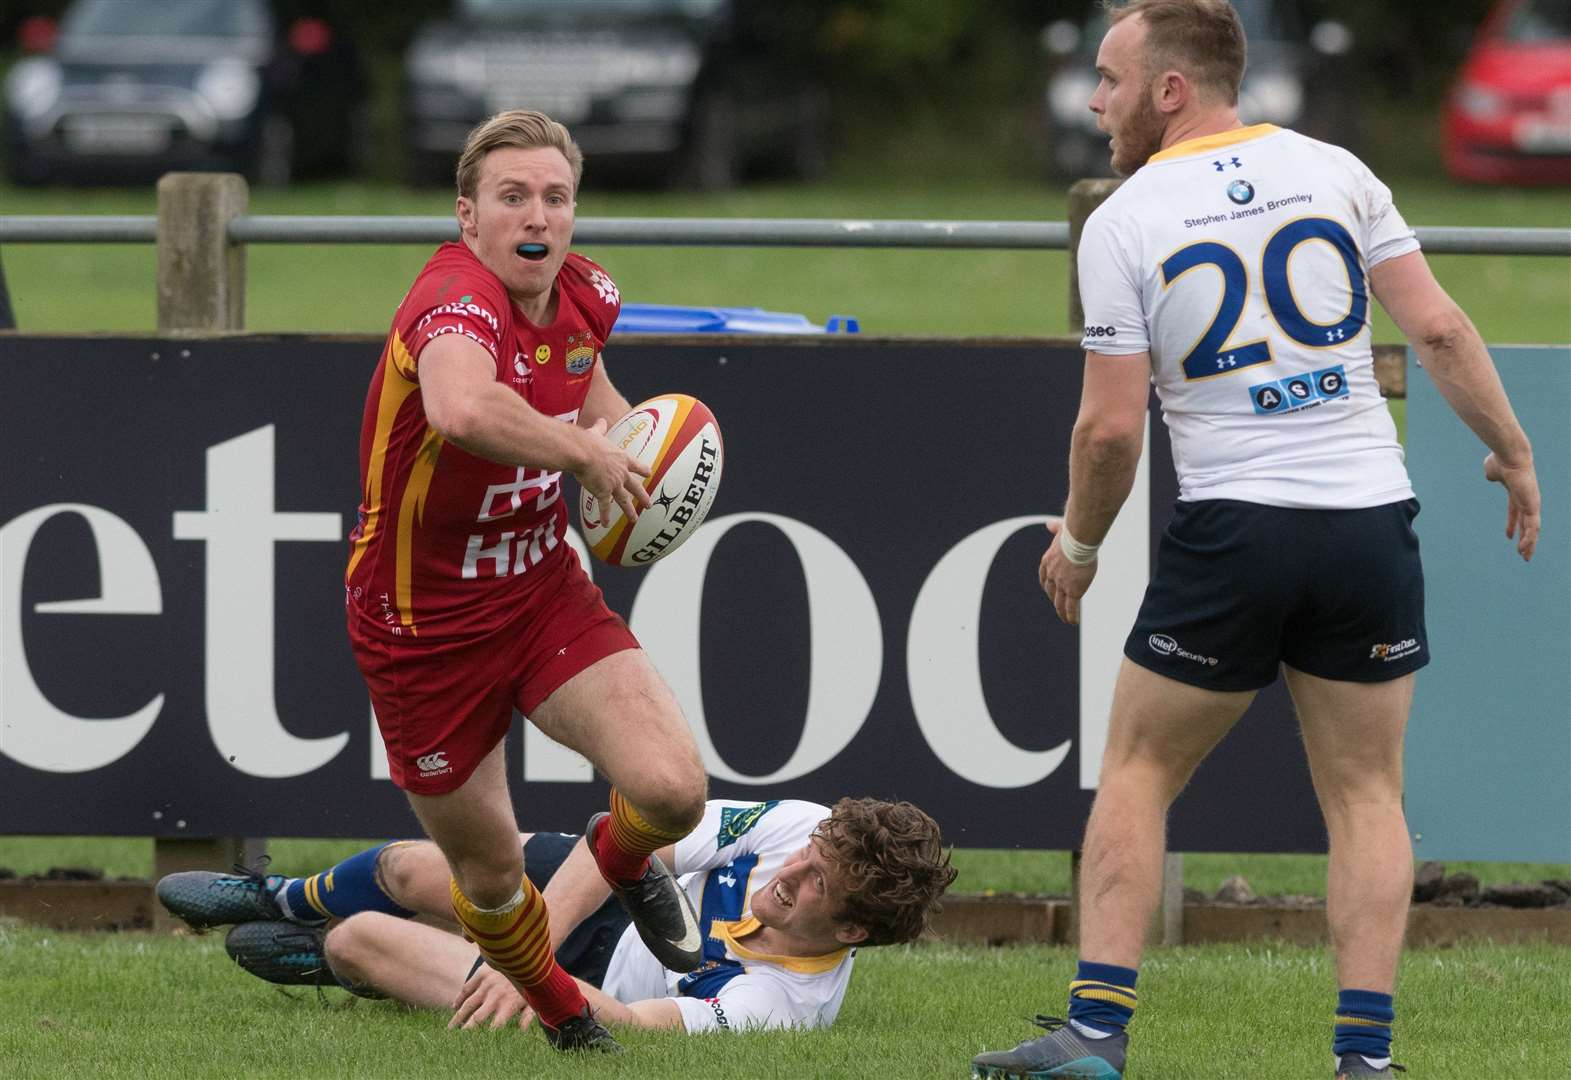 Attacking verve steers Cambridge to victory over Darlington Mowden Park